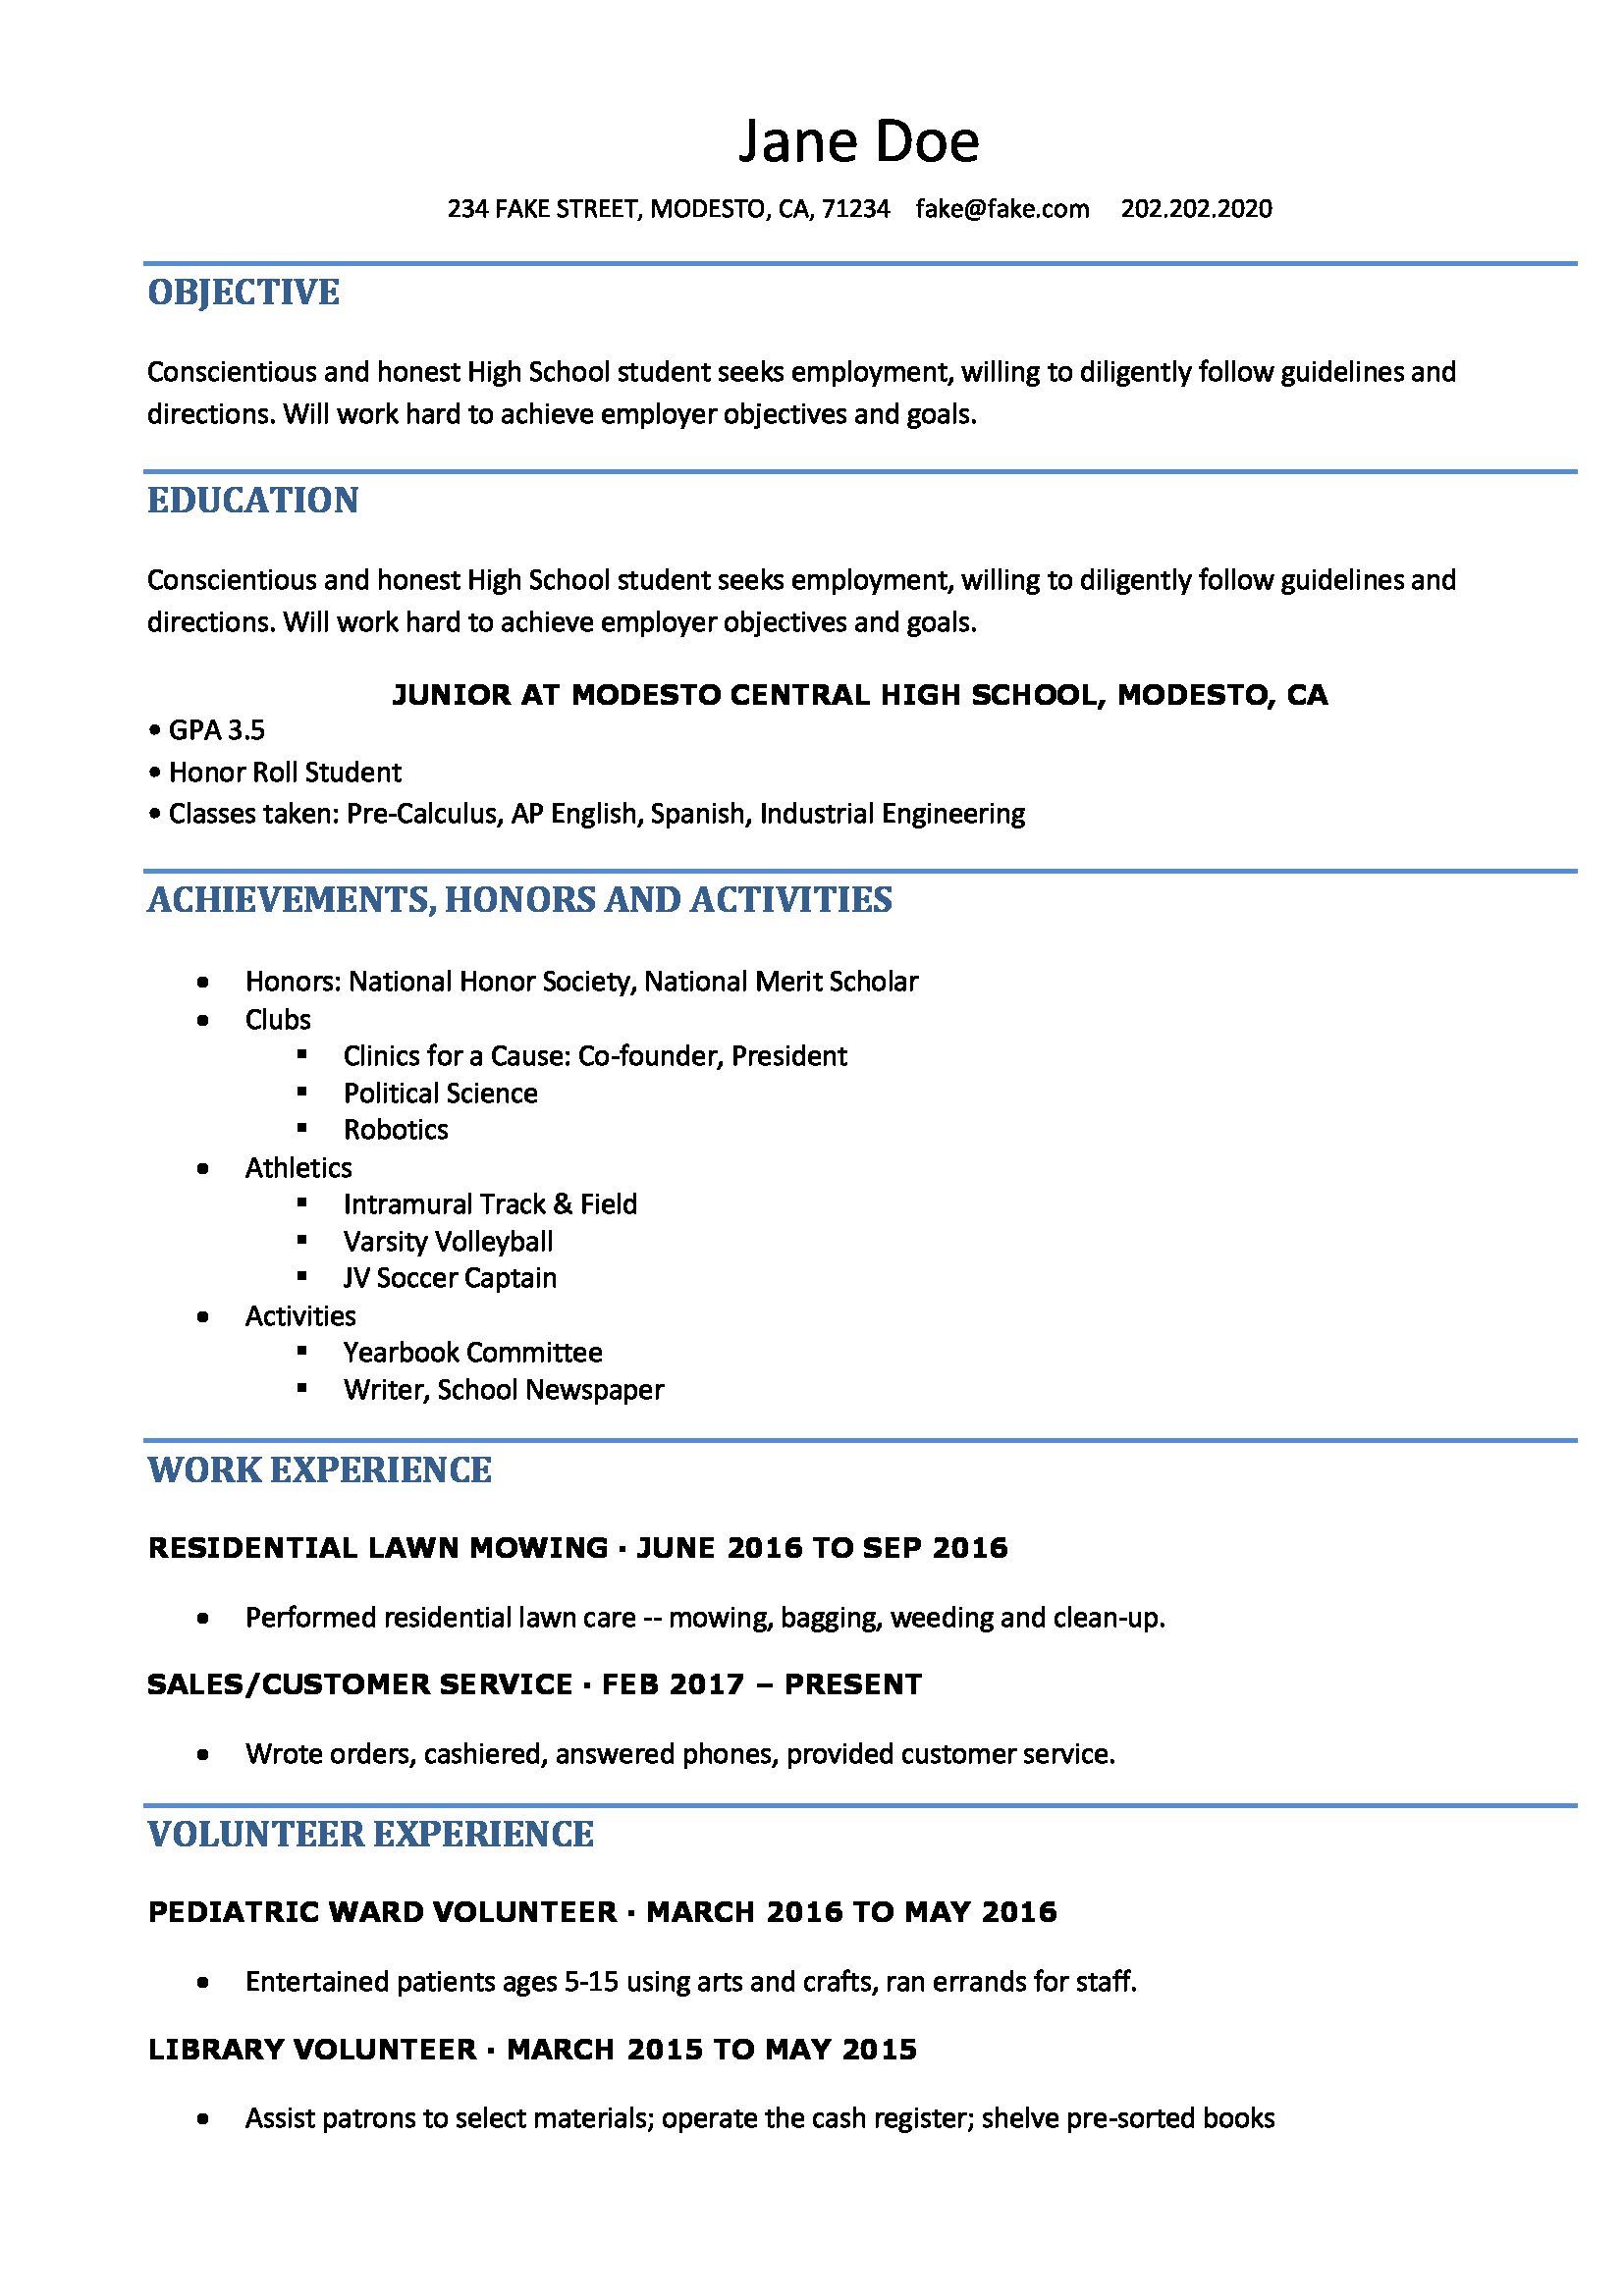 Resume writing for high school students yale university